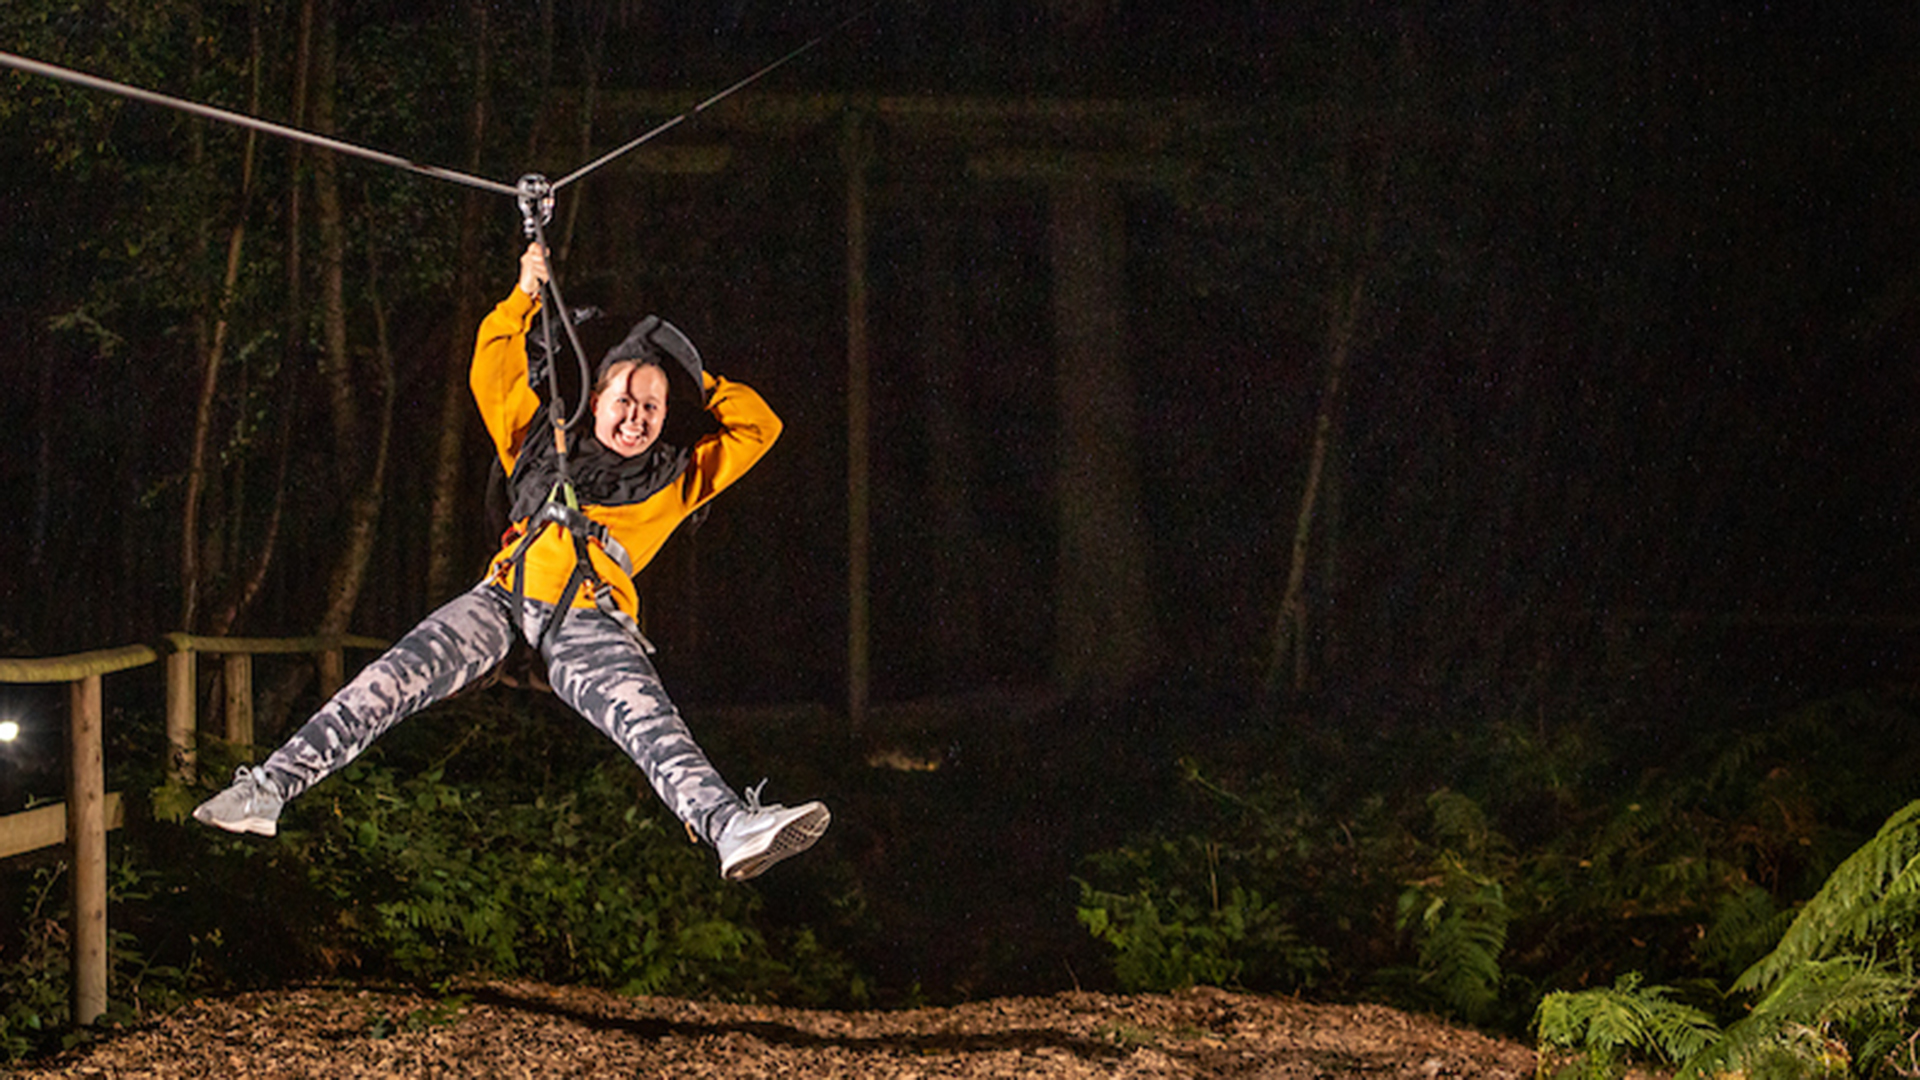 A person in yellow landing on a zip wire in the dark